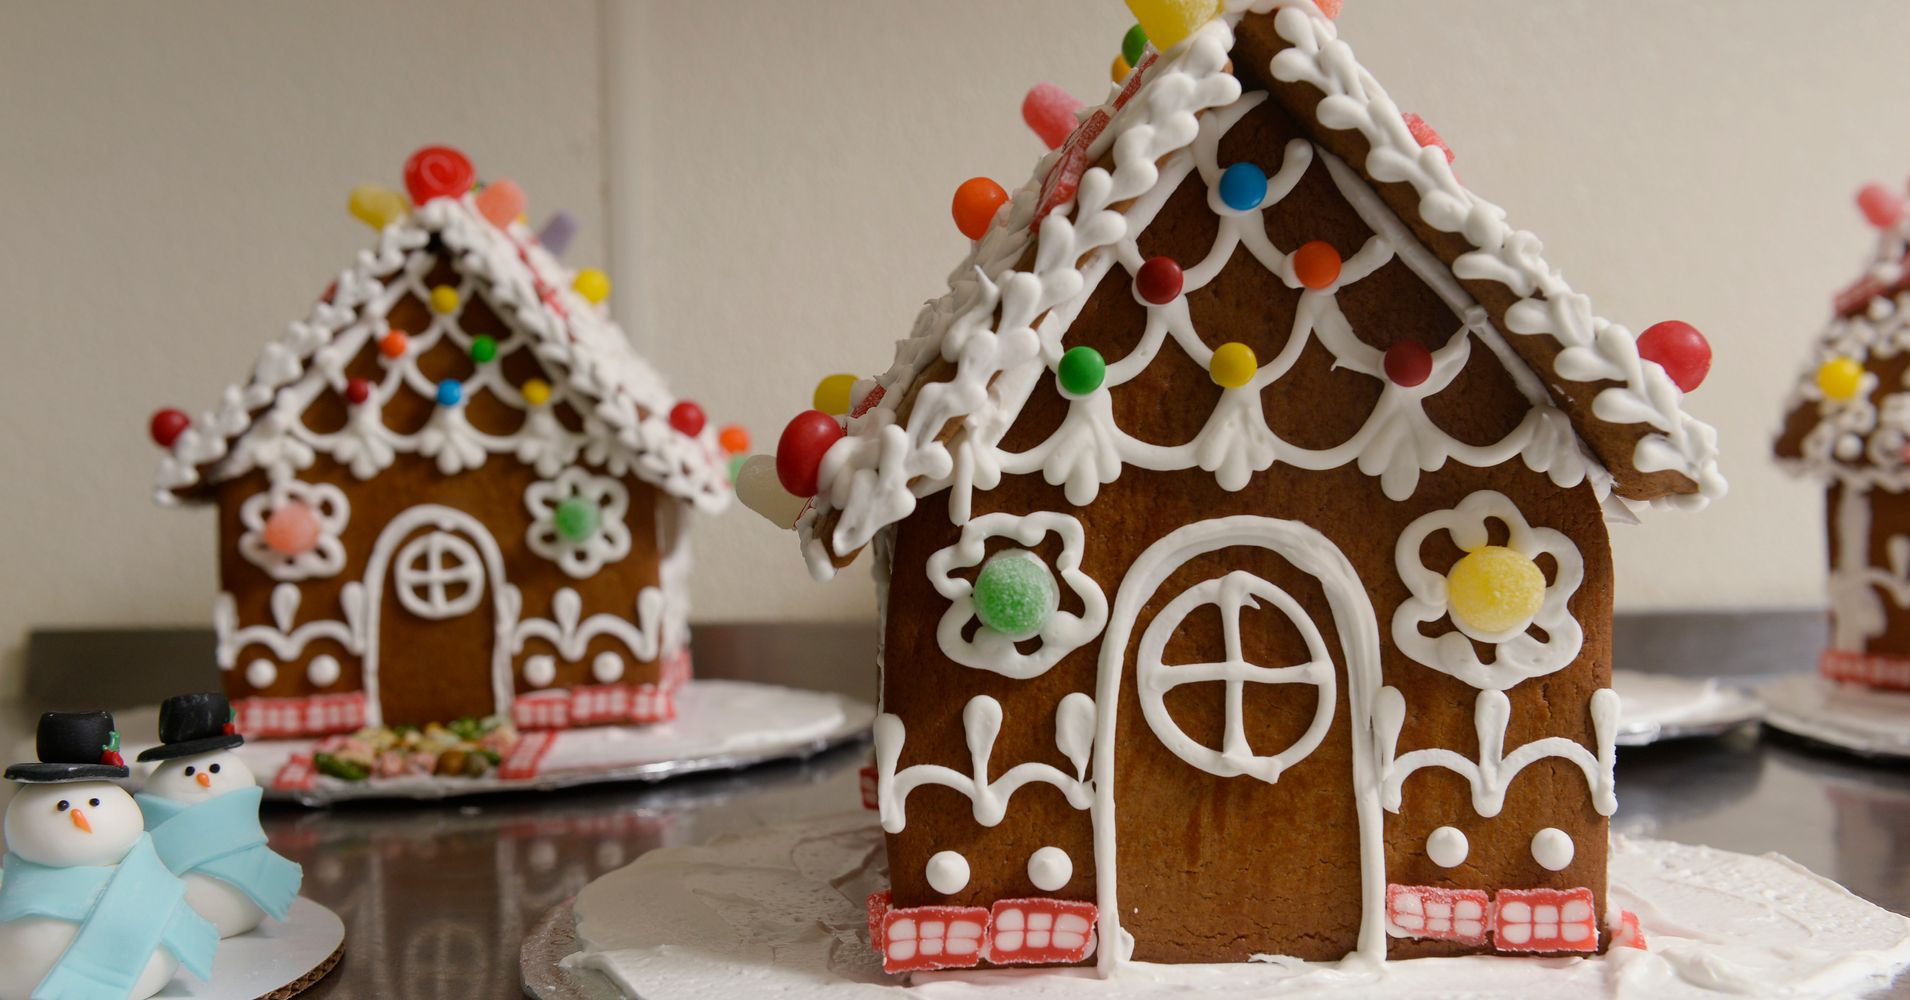 So thats why we have gingerbread houses huffpost